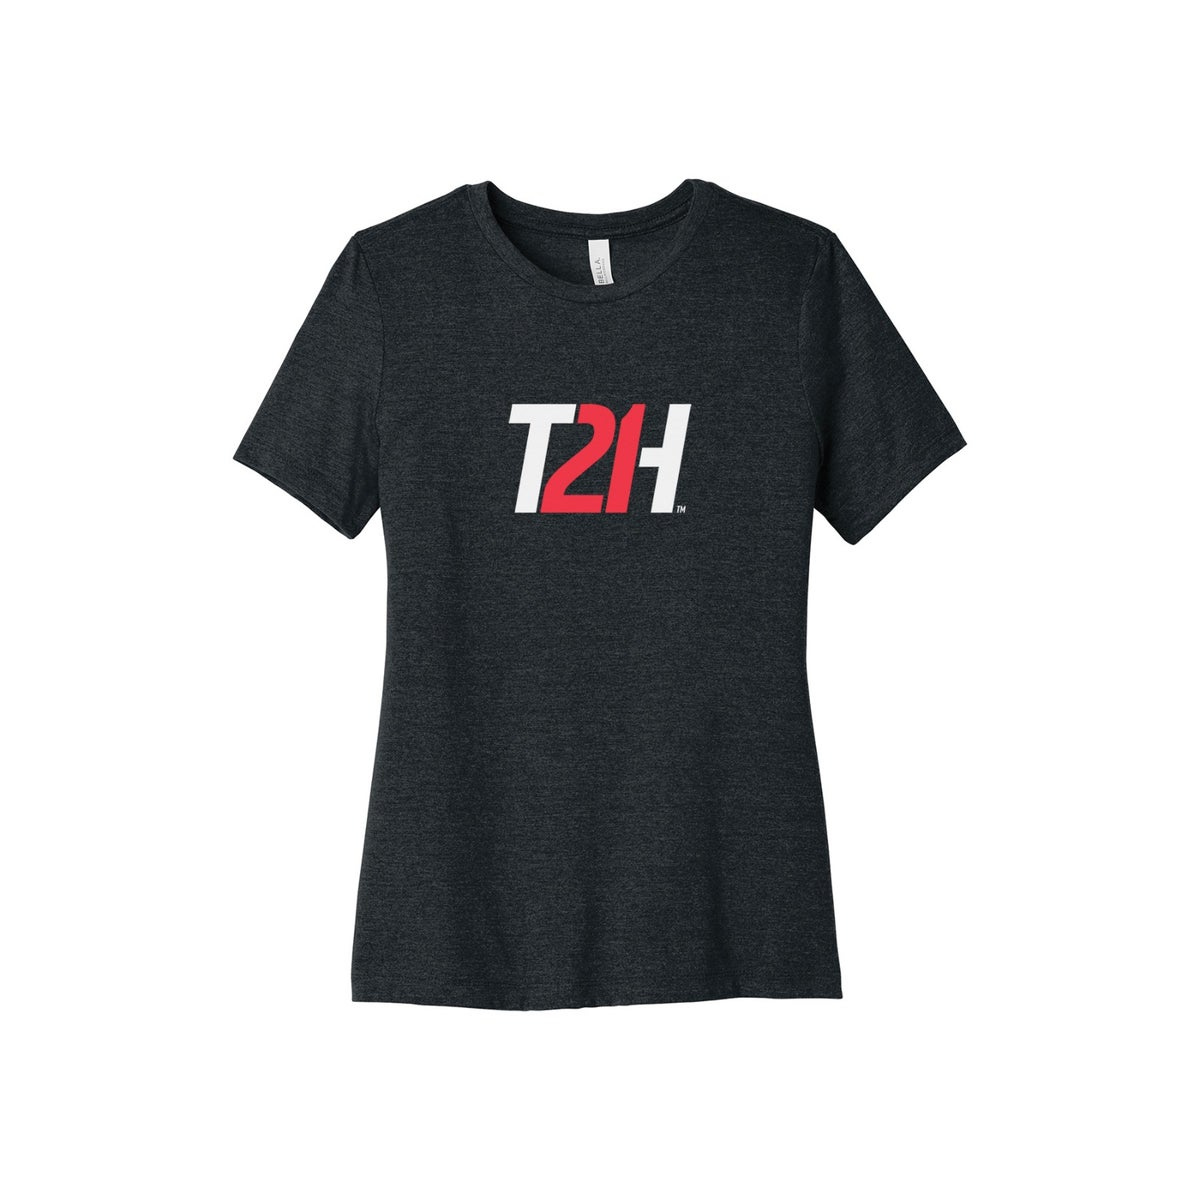 Image of Women's Relaxed Jersey  Tee